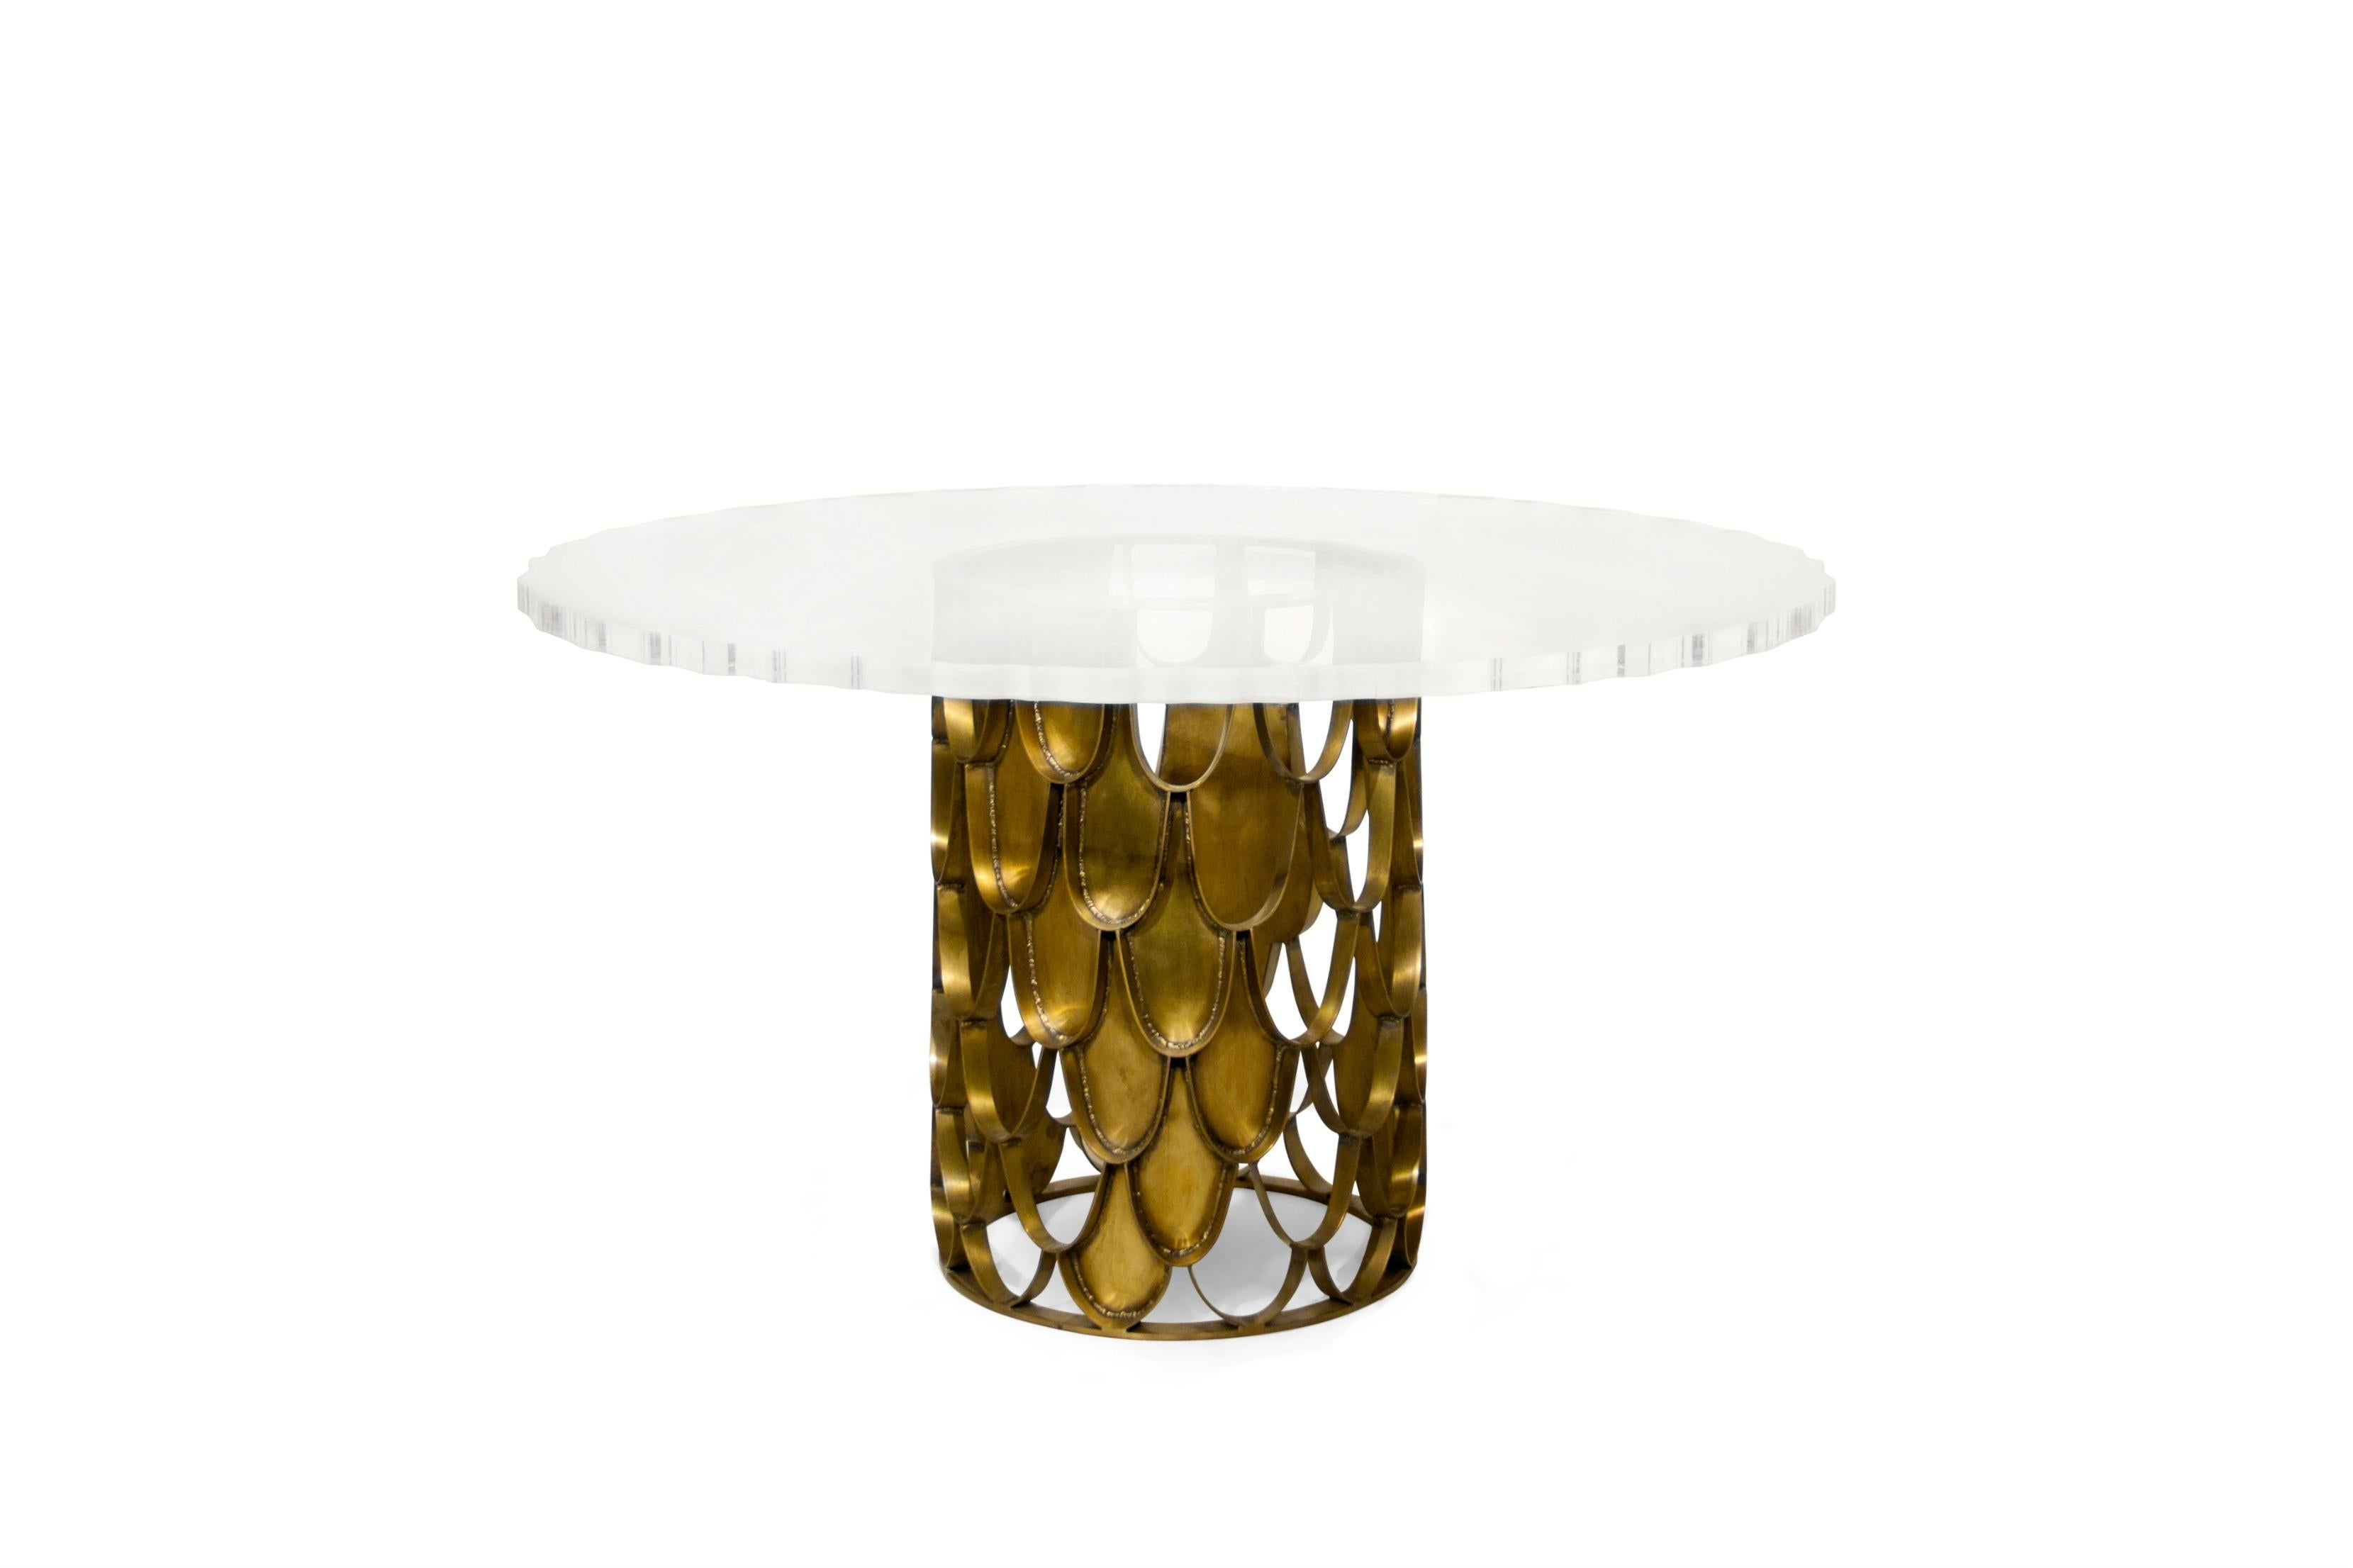 Mid Century Modern Koi Dining Table In Brass With Round Acrylic Top For Sale